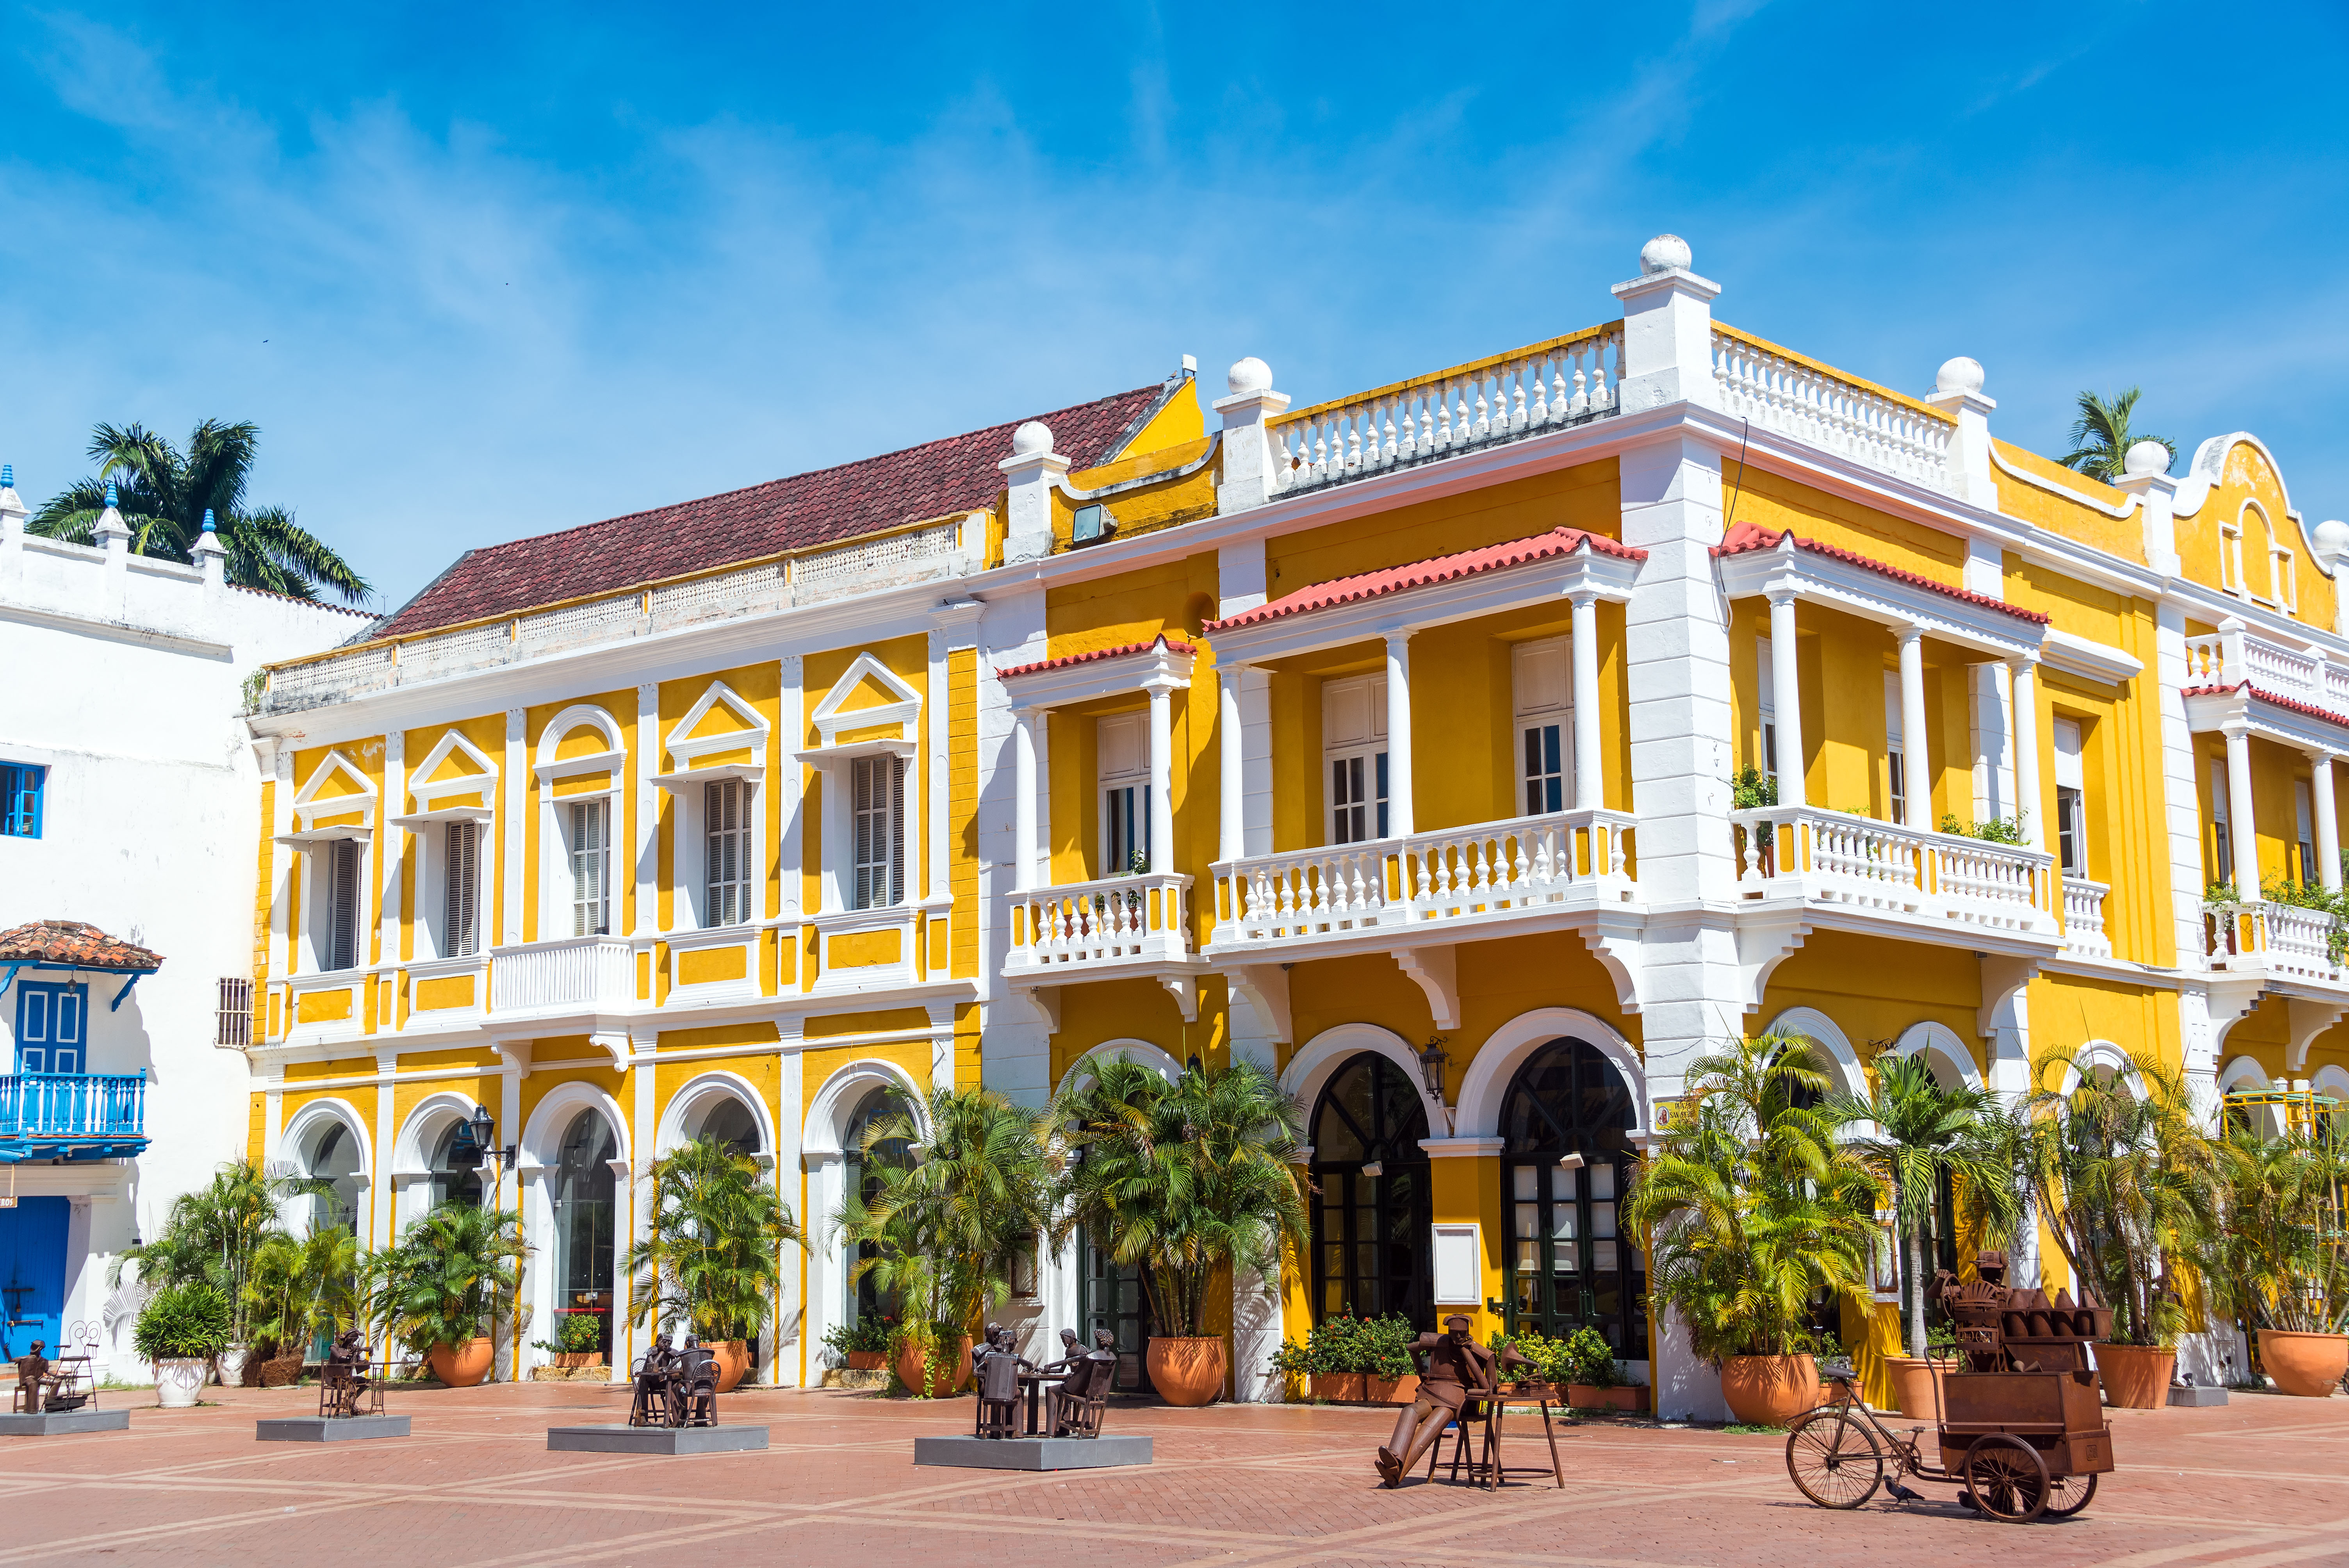 Yellow and white colonial building the historic center of Cartagena, Colombia